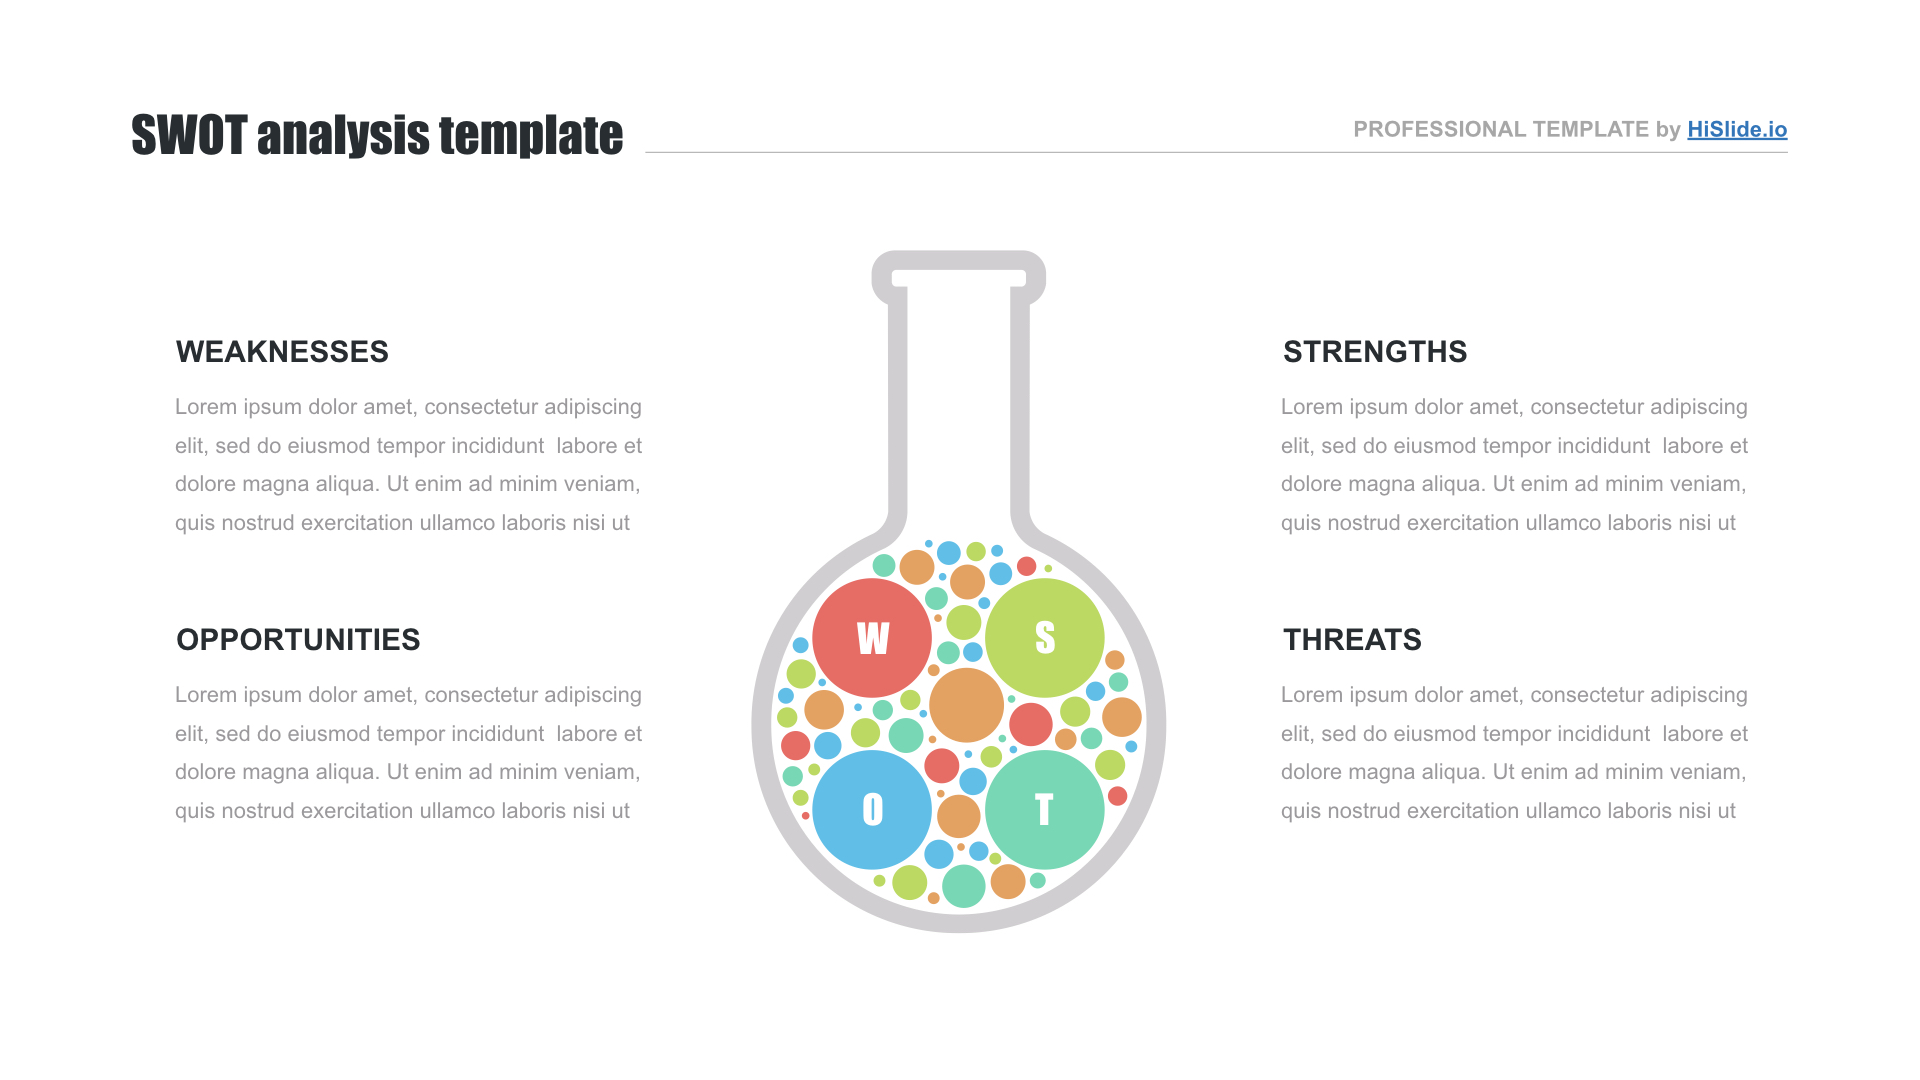 SWOT analysis template Google slides